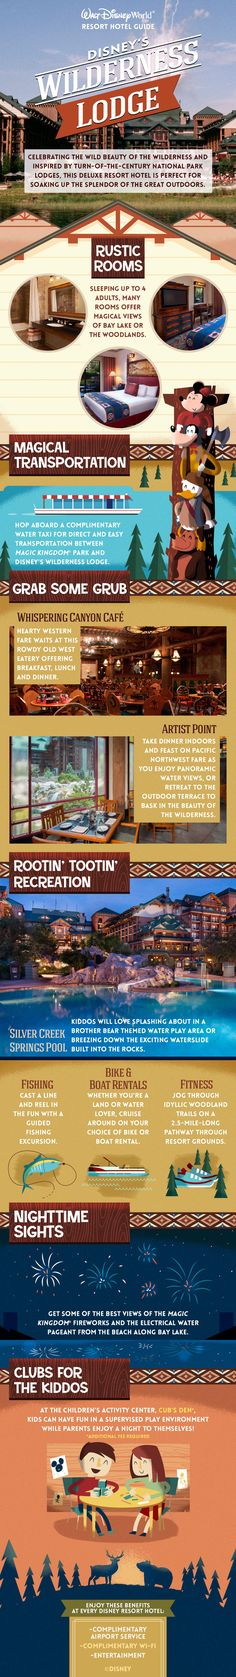 Escape to the rustic majesty of America's Great Northwest. Inspired by turn-of-the-century National Park lodges, Disney's Wilderness Lodge at Walt Disney World Resort celebrates American craftsmanship and honors the beauty of the untamed wilderness. Disney World Hotels, Disney World Resorts, Disney World Tipps, Disney Resort Hotels, Disney World Tips And Tricks, Disney Parks, Authorized Disney Vacation Planner, Disney Vacation Club, Disney Vacation Planning